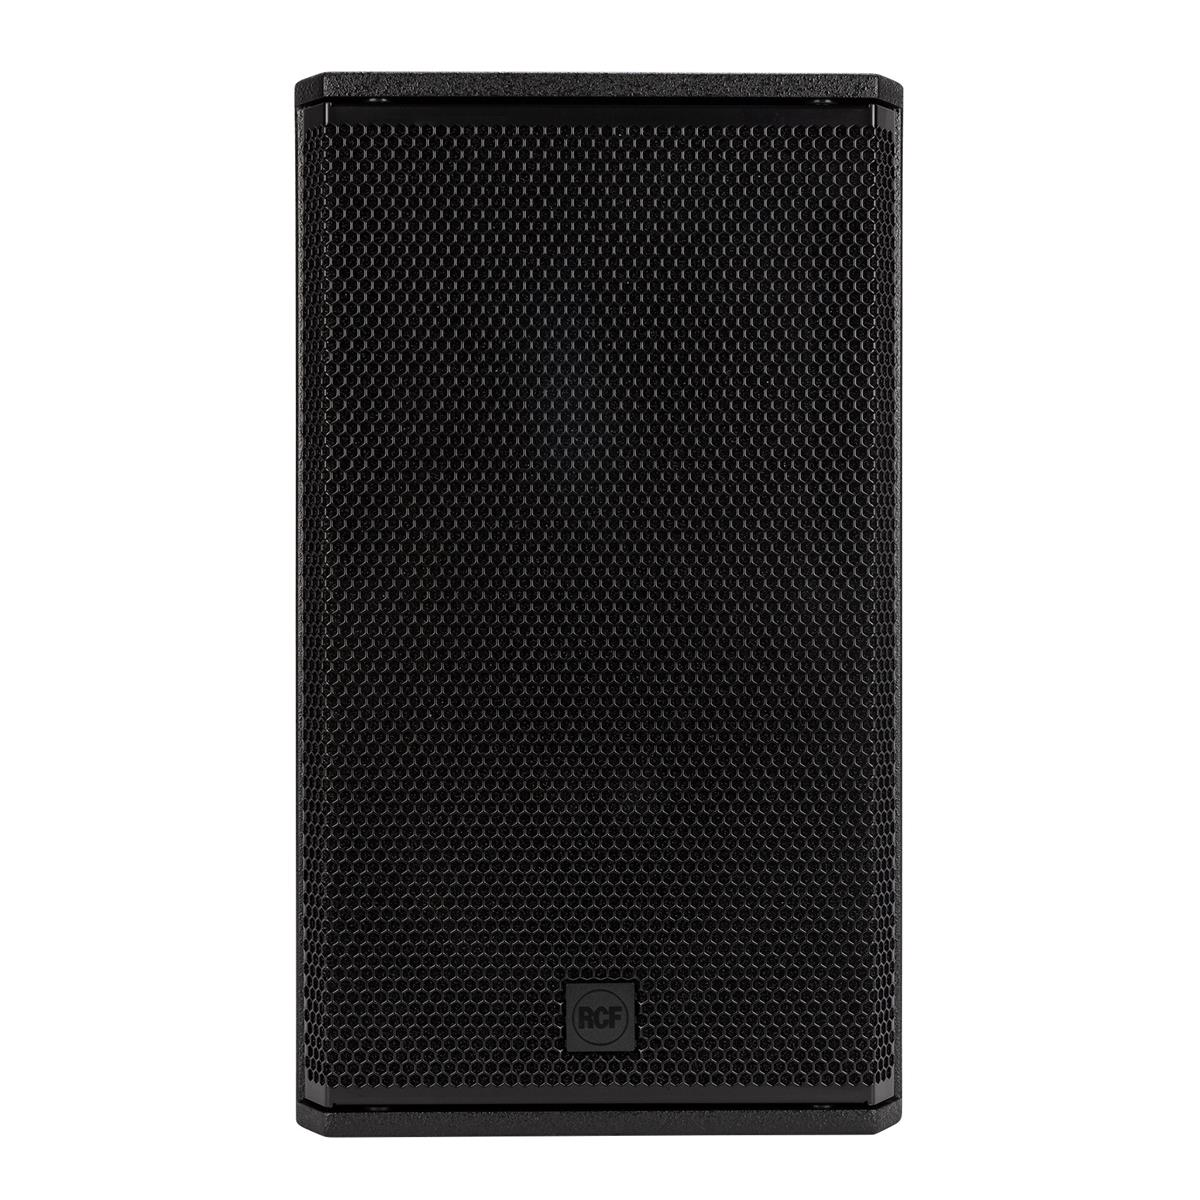 RCF Two-way passive speaker system 12in+ 1in, 300W